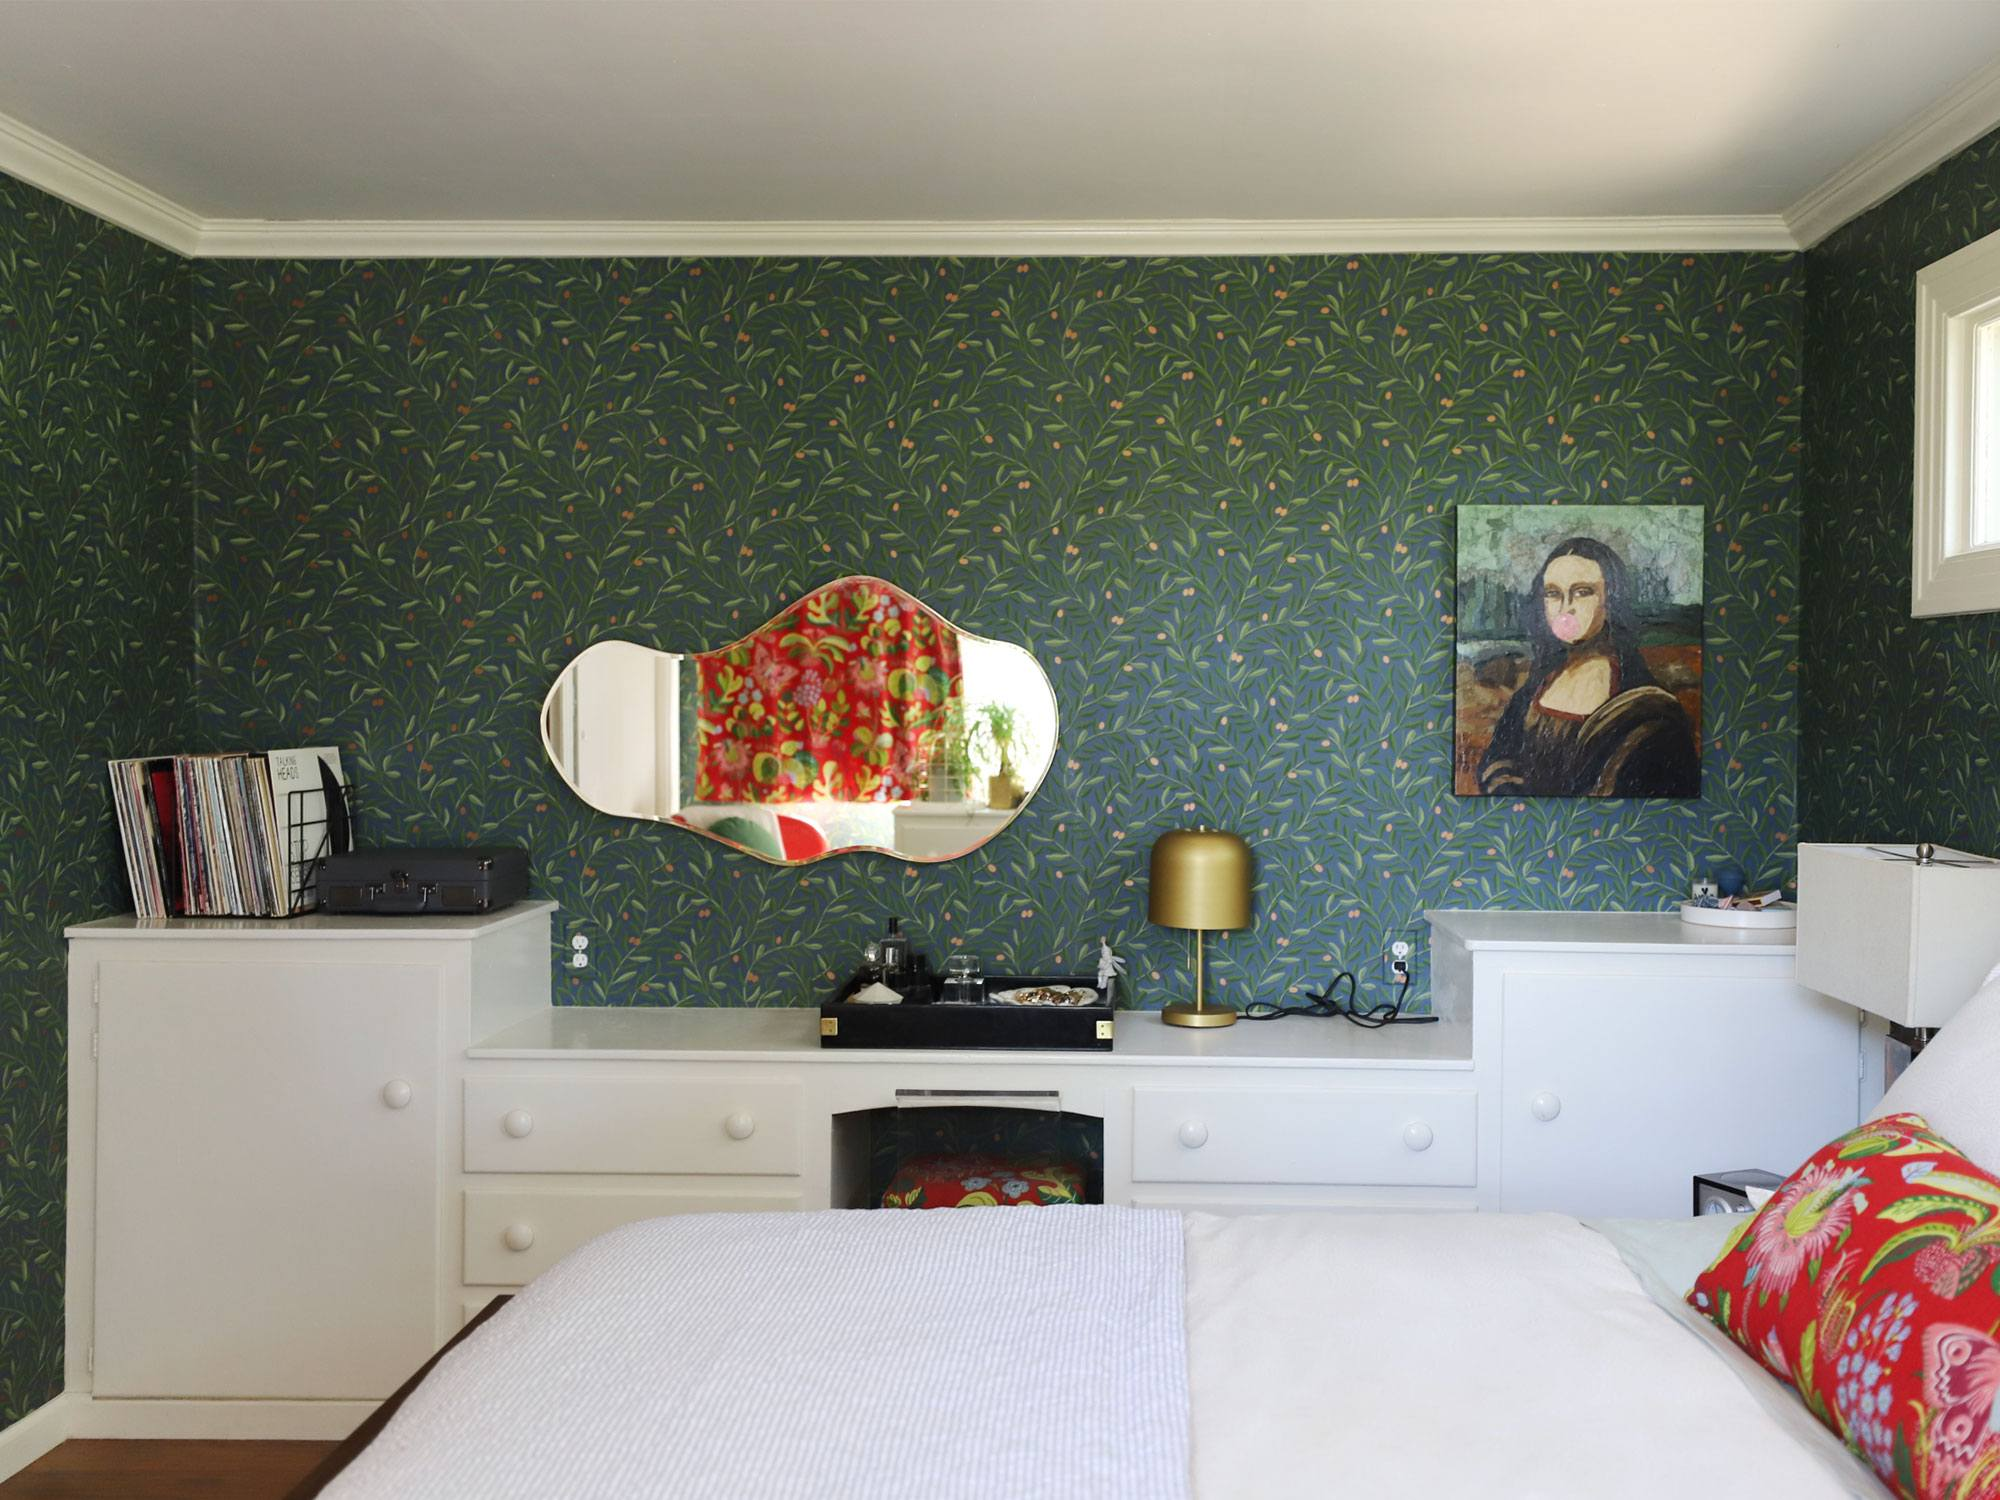 Olive Grove (Midnight) wallpaper from Schoolhouse + Hygge & West collection in H&W co-founder Christiana Coop's California farmhouse bedroom